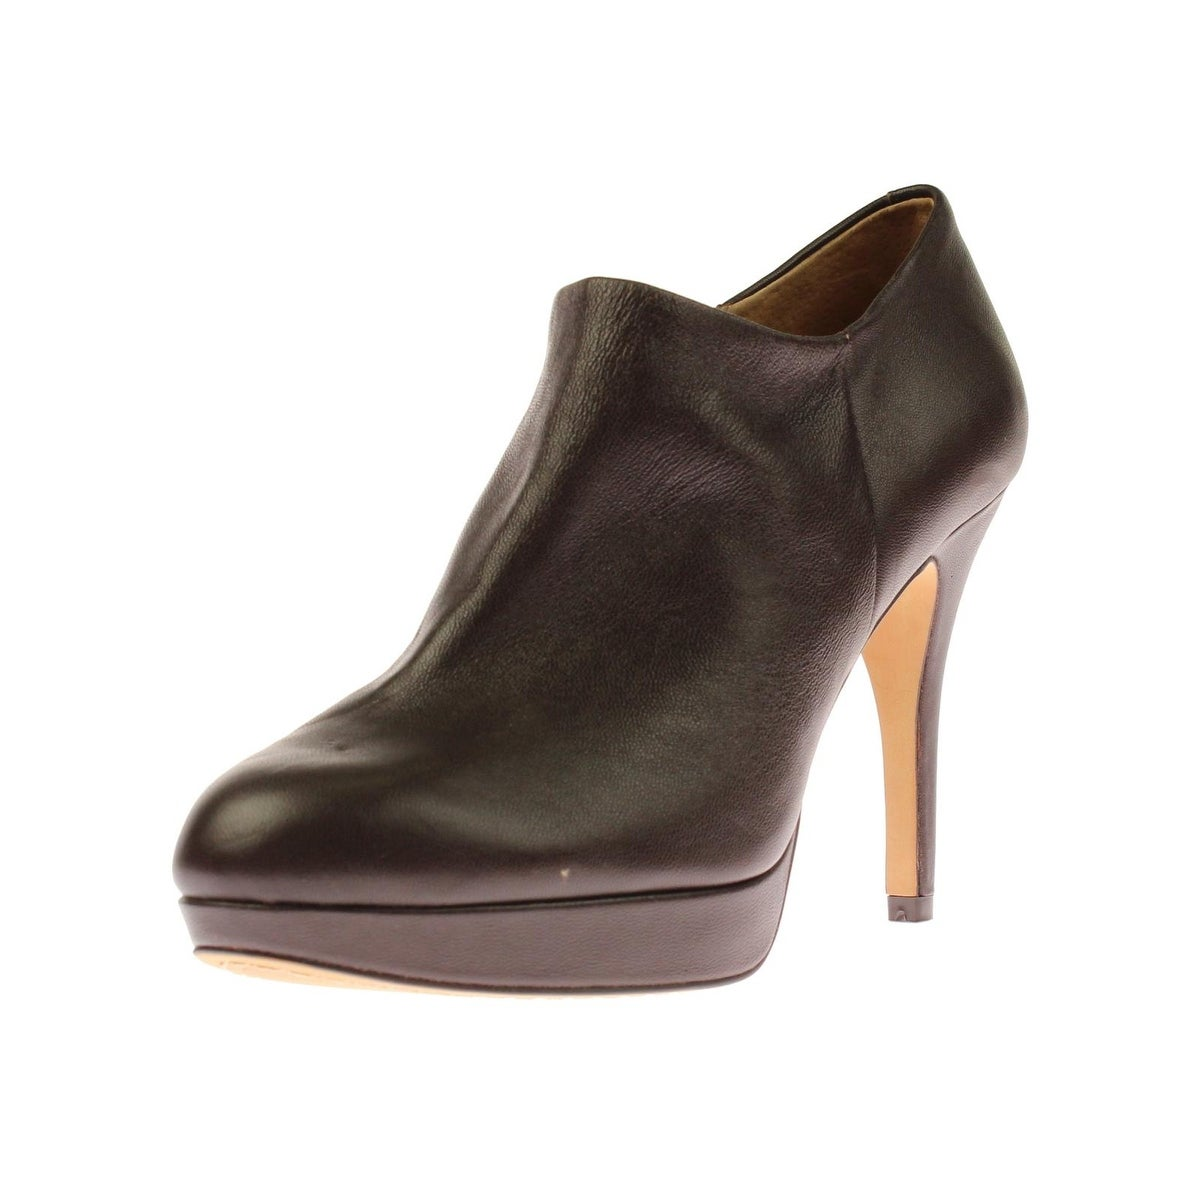 98c4b12aea Shop Vince Camuto Womens Elvin Booties Leather Platform - Free Shipping  Today - Overstock - 23571297